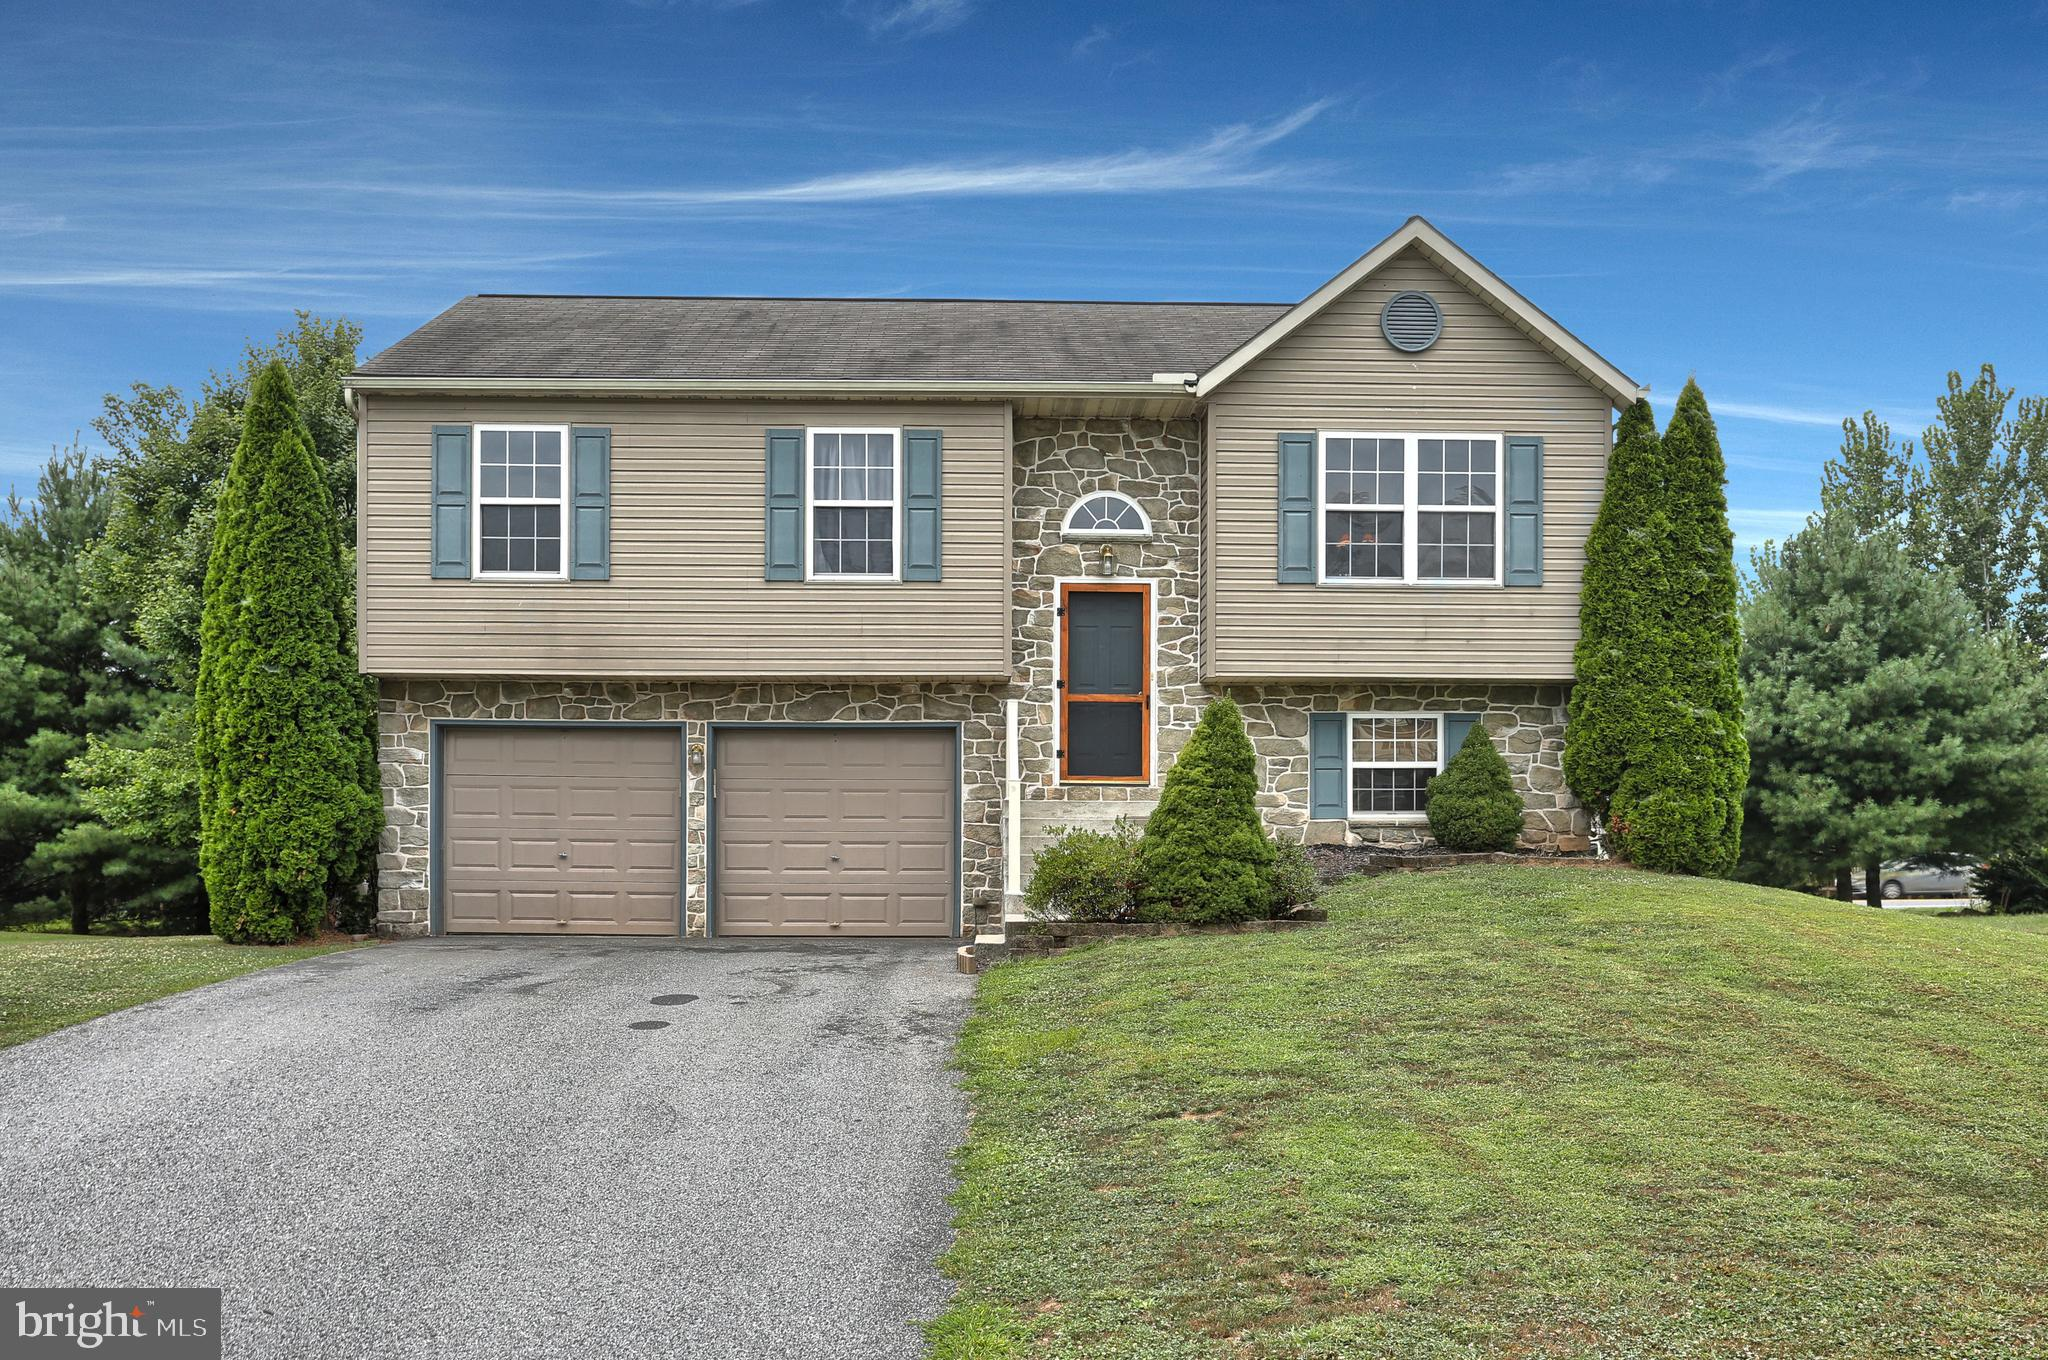 109 SKIPJACK WAY, BAINBRIDGE, PA 17502